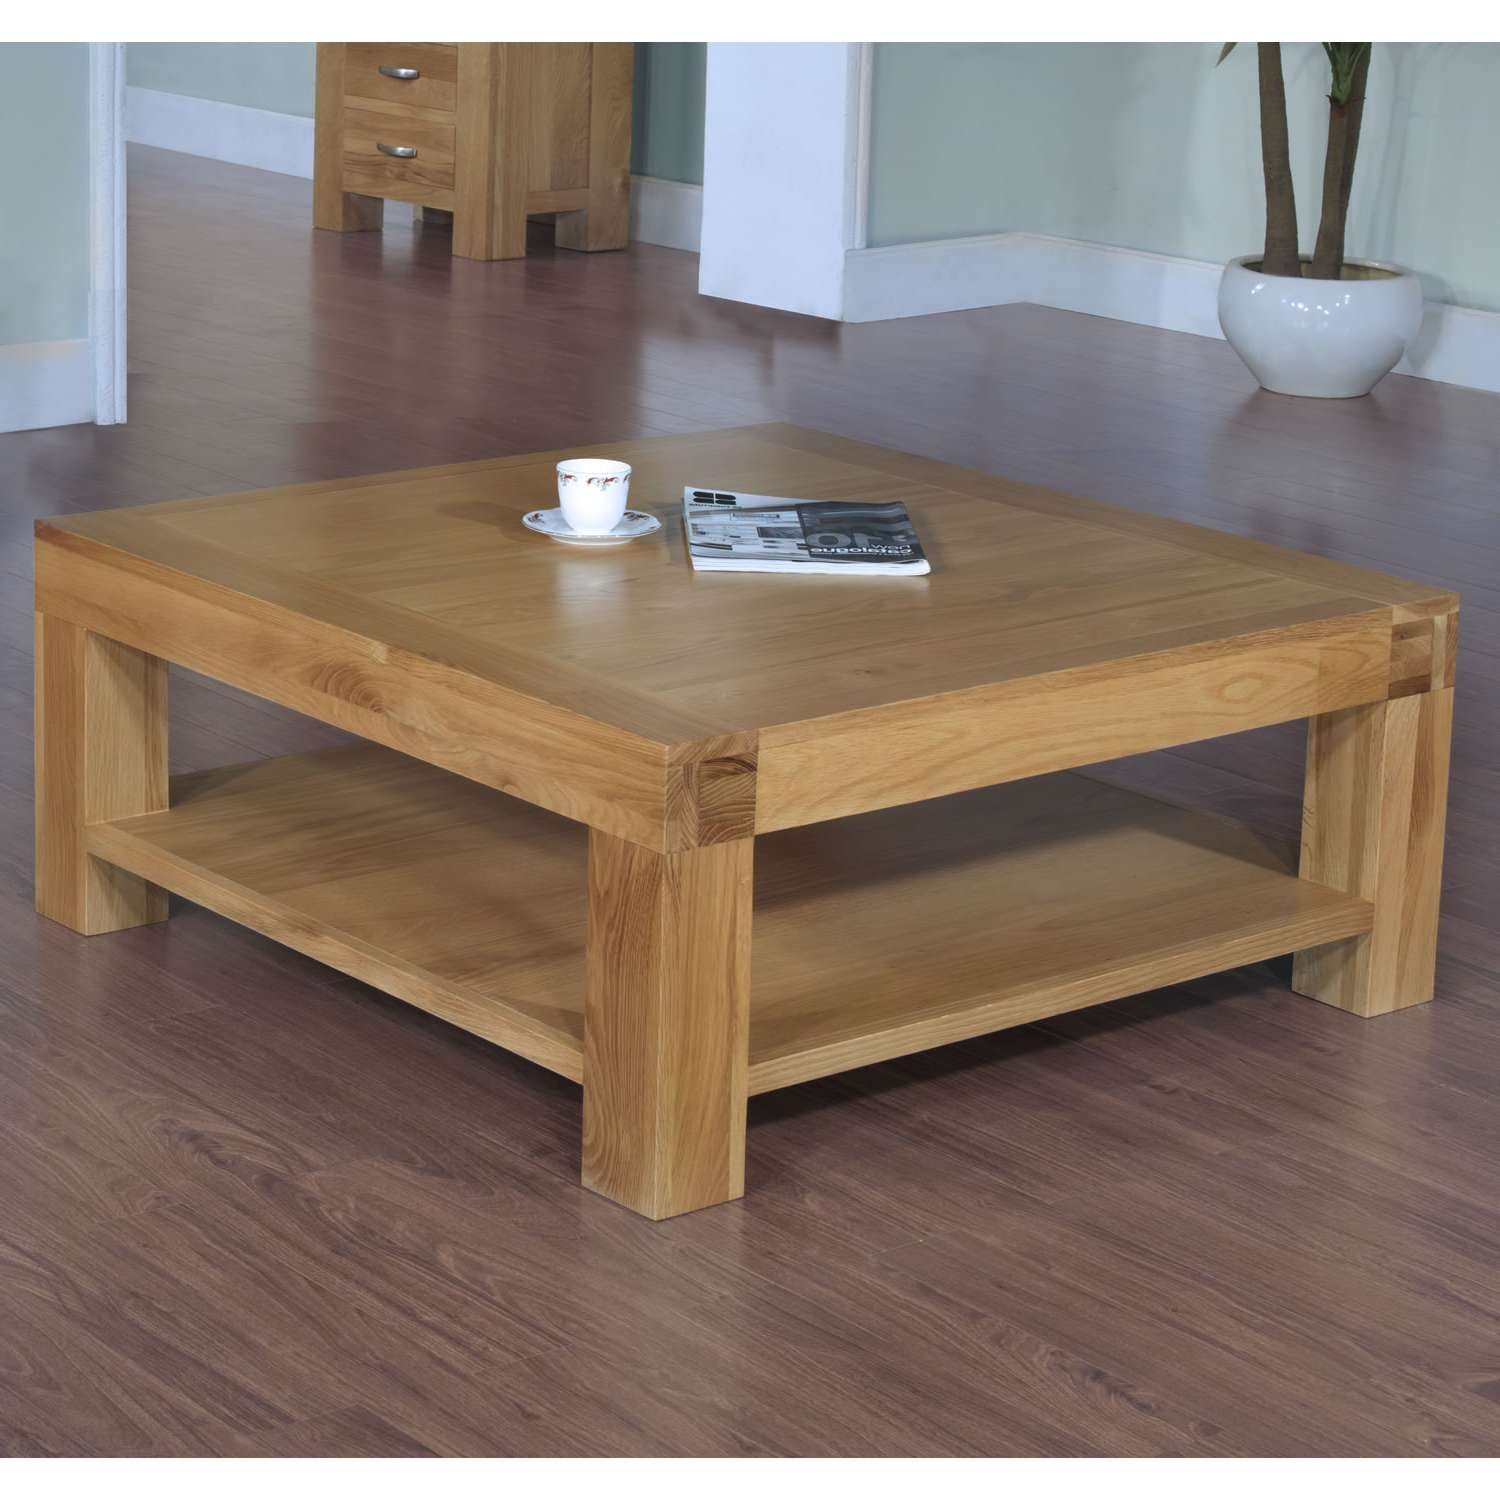 Coffee Table : Amazing Low Coffee Table Extra Large Square Coffee For Latest Large Low Rustic Coffee Tables (View 15 of 20)